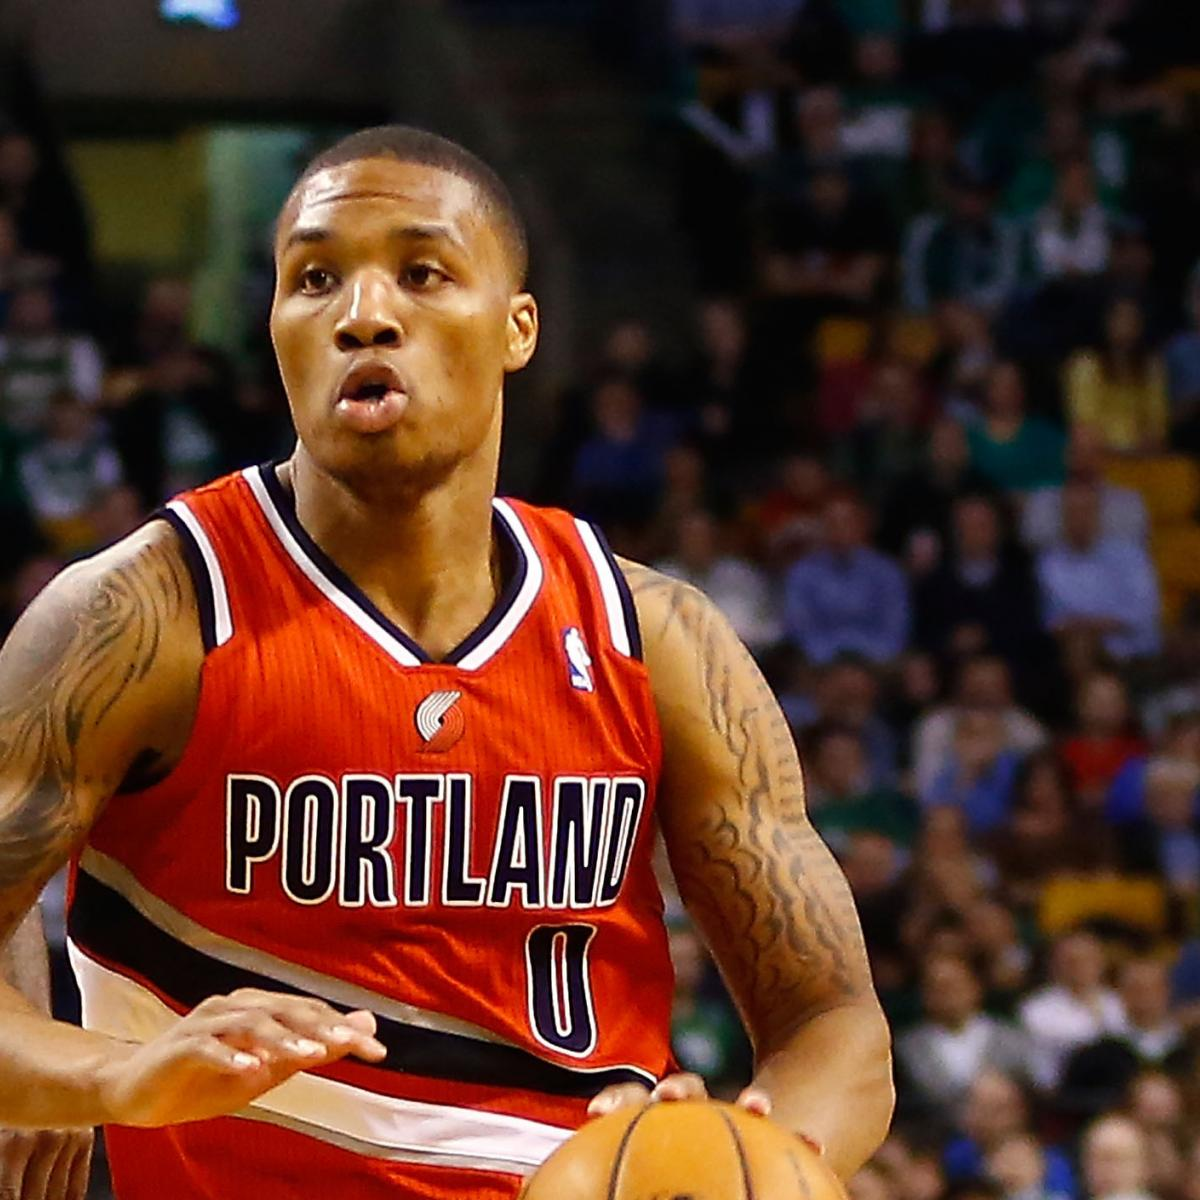 Portland Blazers Roster 2012: Portland Trailblazers, Led By Rookie Damian Lillard, Are